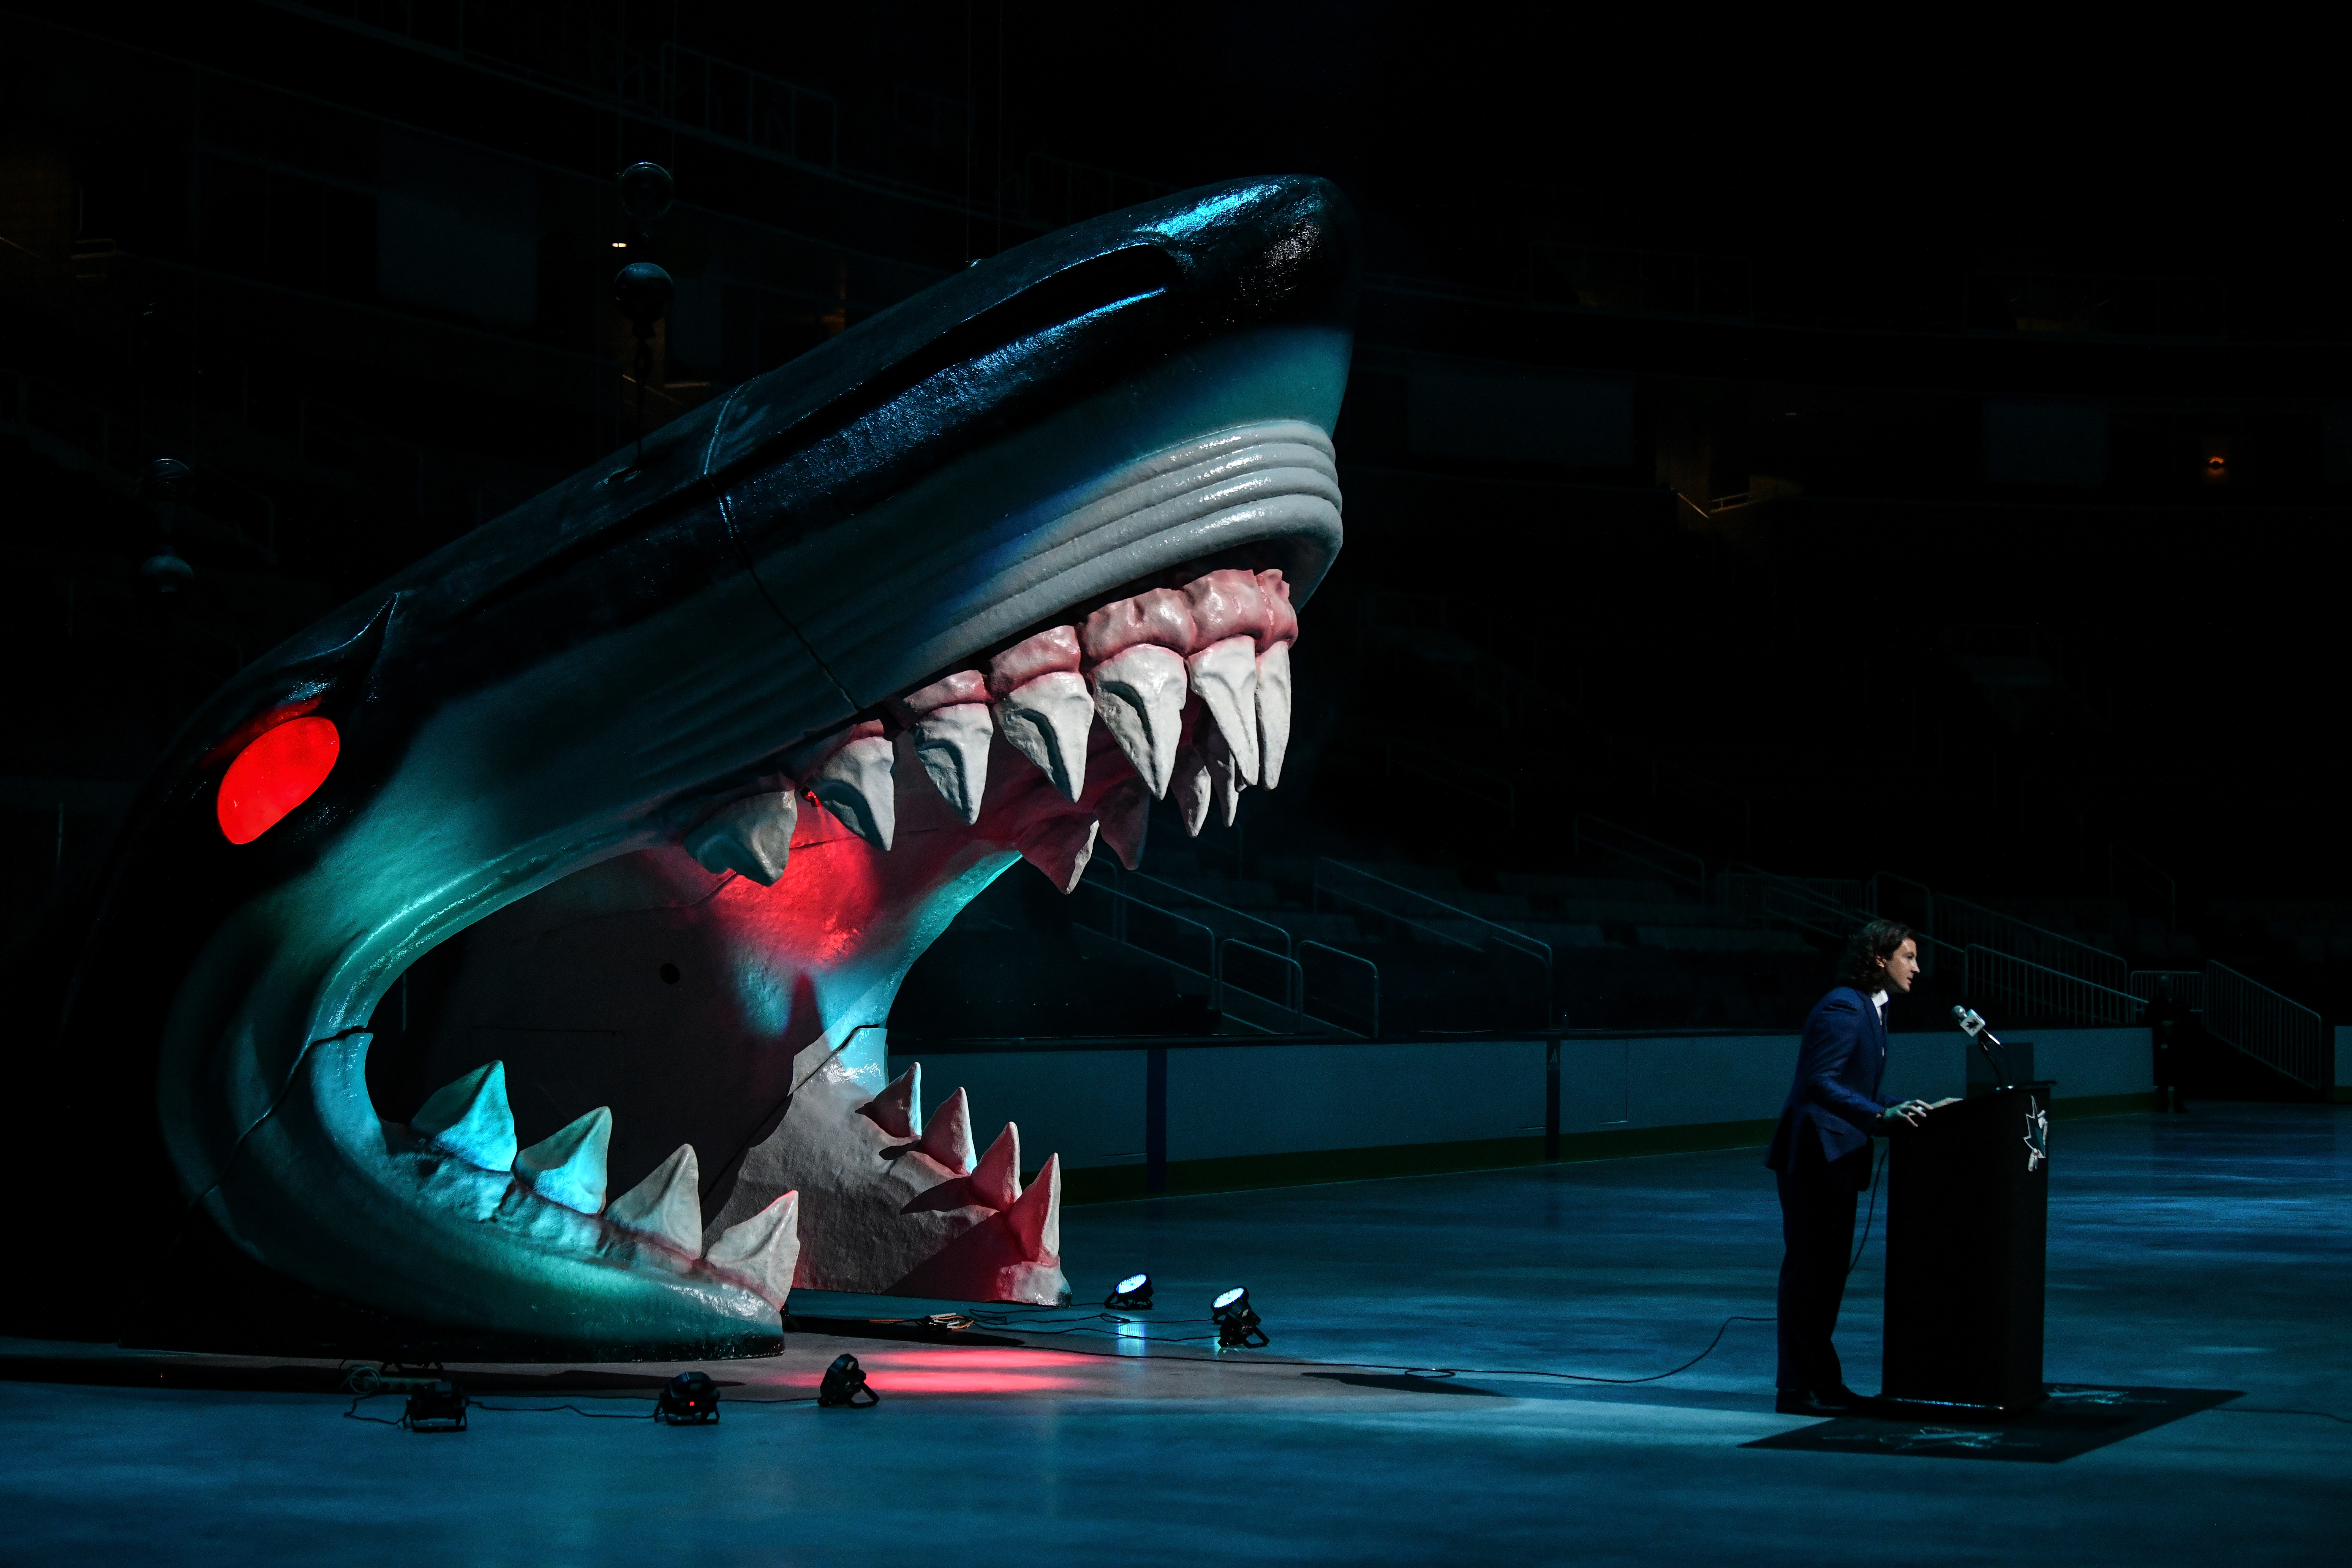 San Jose Sharks Director of Scouting Doug Wilson Jr. stands at the podium as the Sharks select William Eklund seventh overall in the first round during the 2021 NHL Draft at SAP Center on July 23, 2021 in San Jose, California.